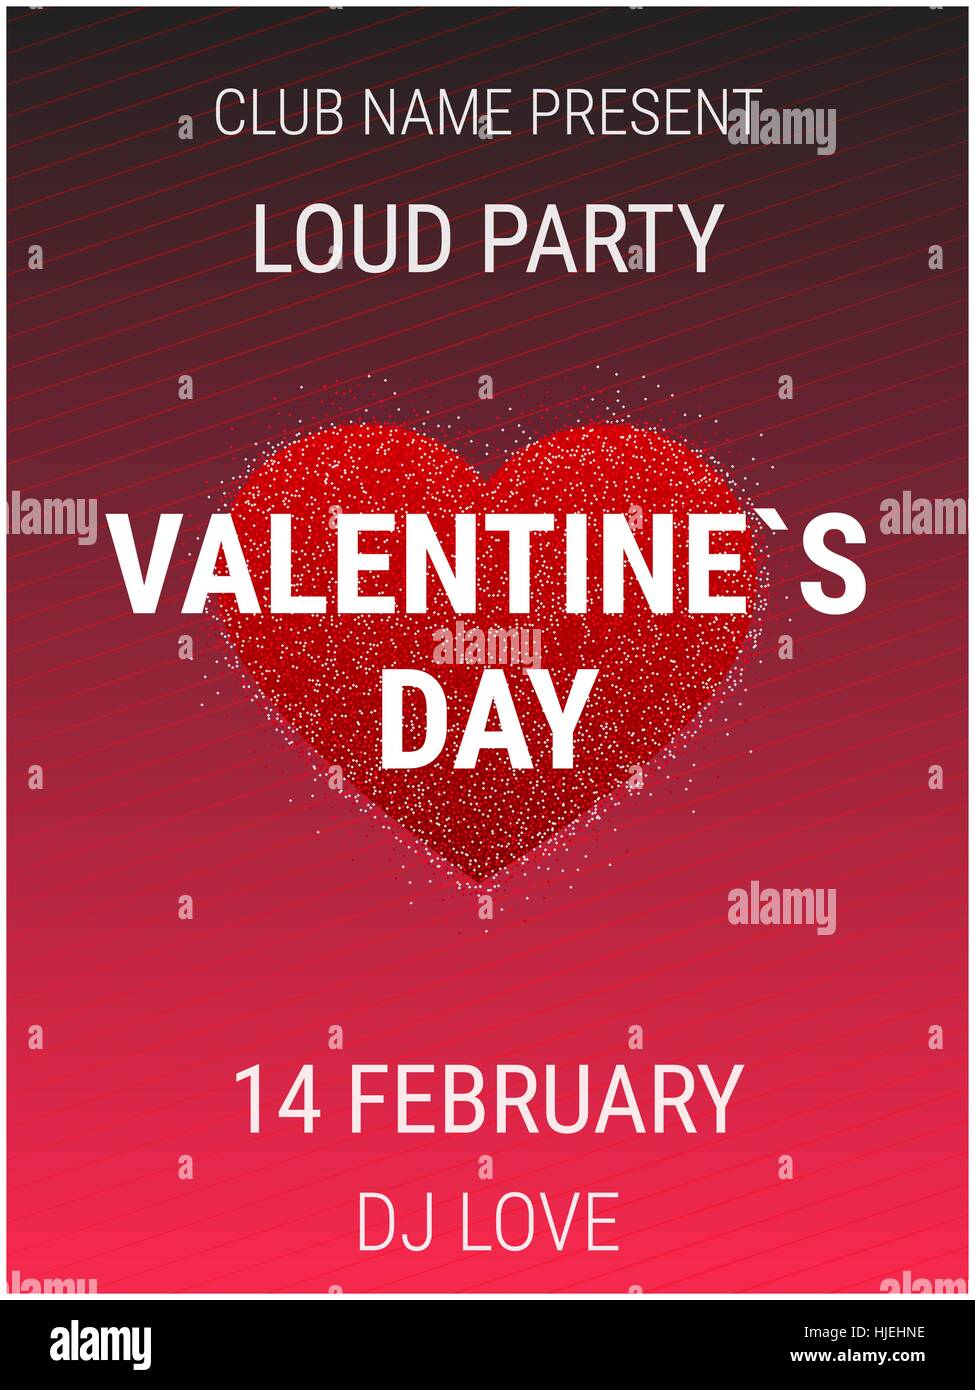 Valentines Day Party Poster Template With Shiny Glitter Heart Stock